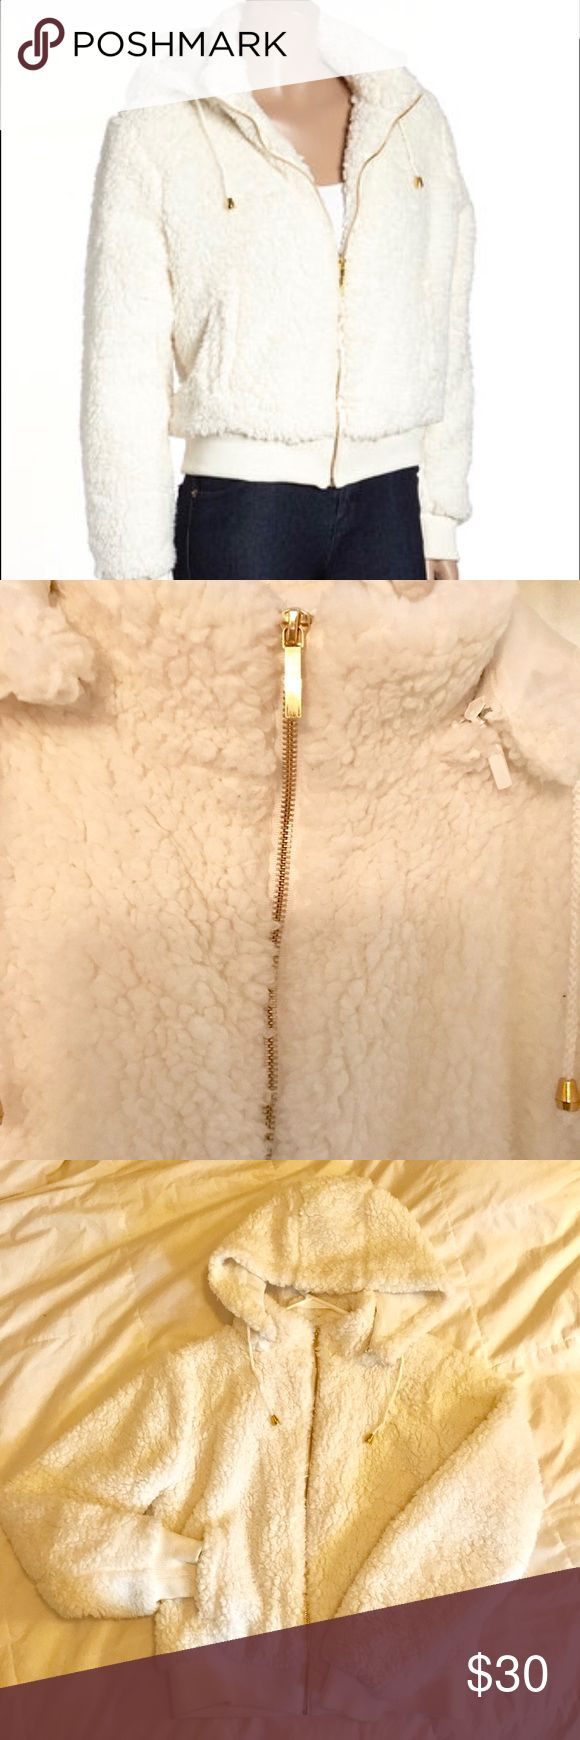 Make offer🥂Faux Wool bomber jacket w/detach hood Beautiful white/cream color with gold hardware! Incredibly soft inside and out, no stains! Has been sitting in my closet and needs some love! 🥂Open to offers 😊 Jackets & Coats